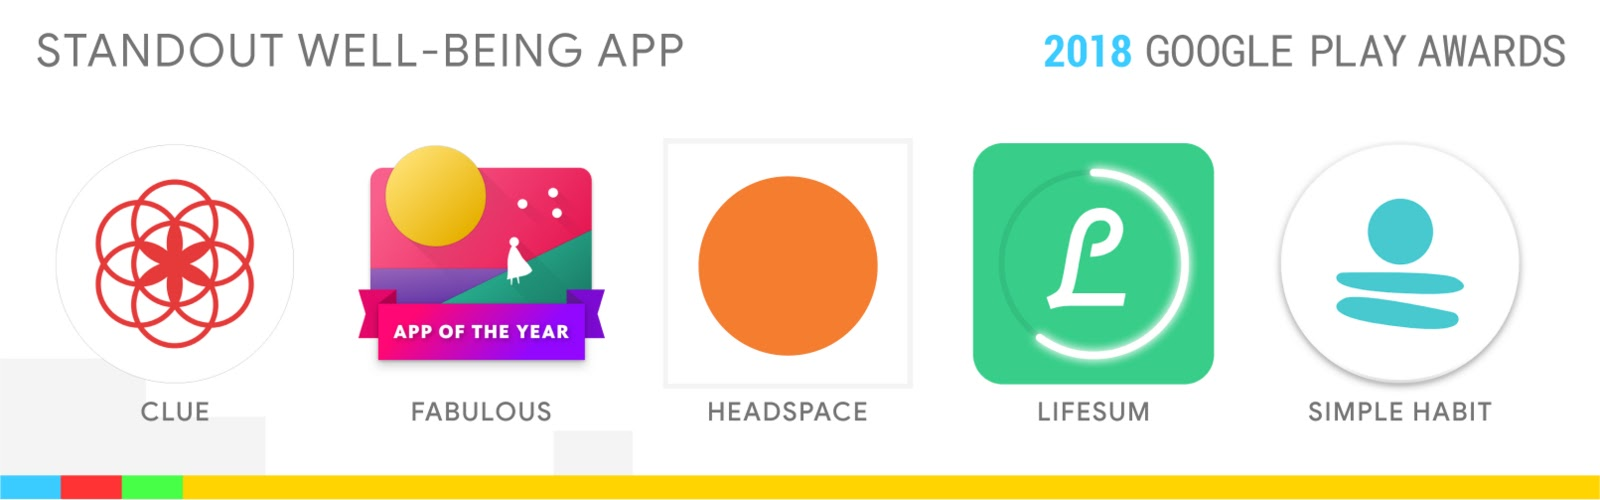 Standout Well-Being App: Clue, Fabulous, Headspace, Lifesum, Simple Habit